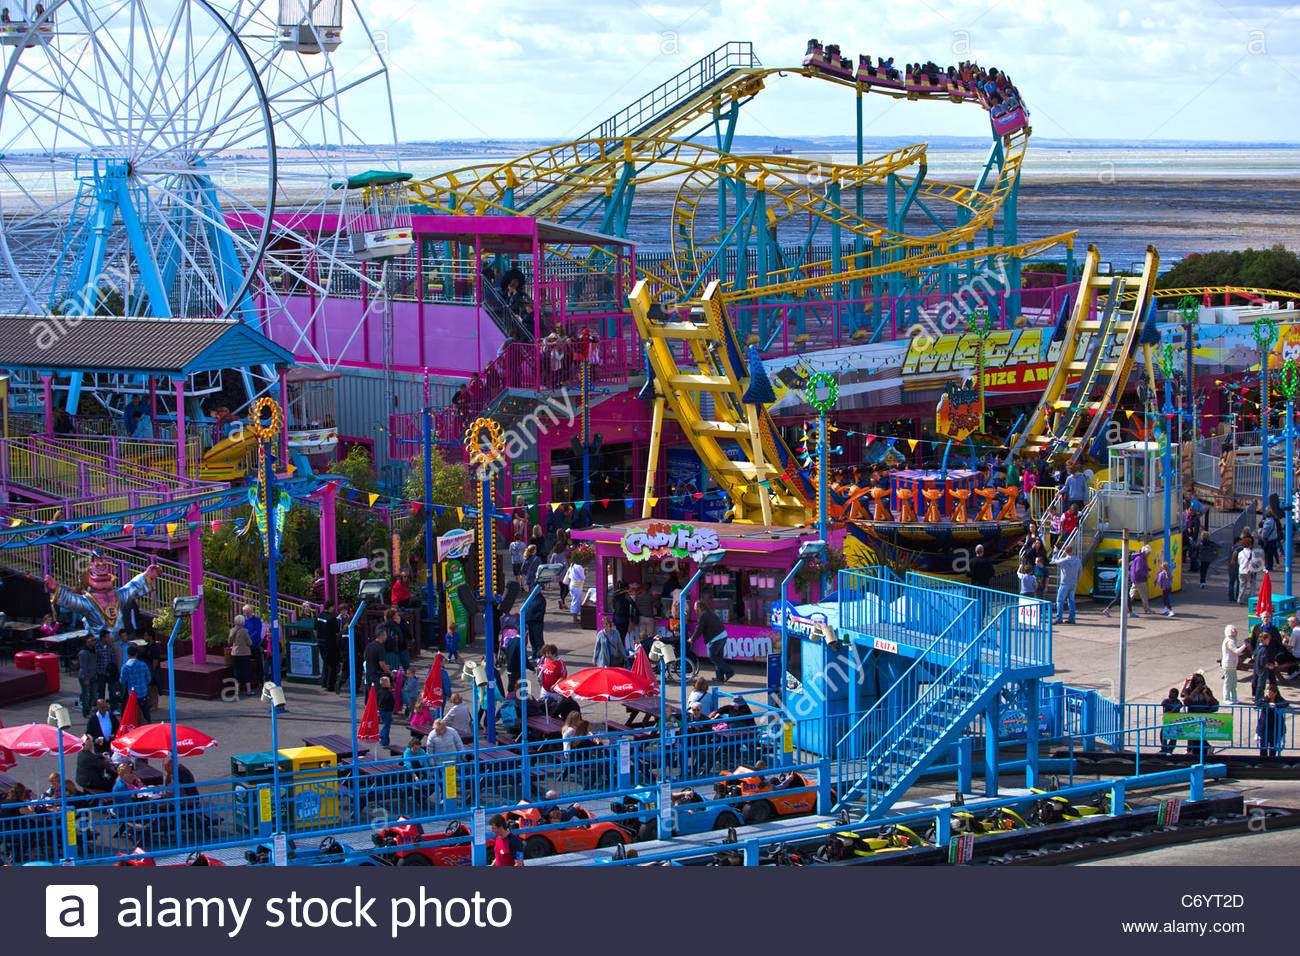 Adventure island playground tale in